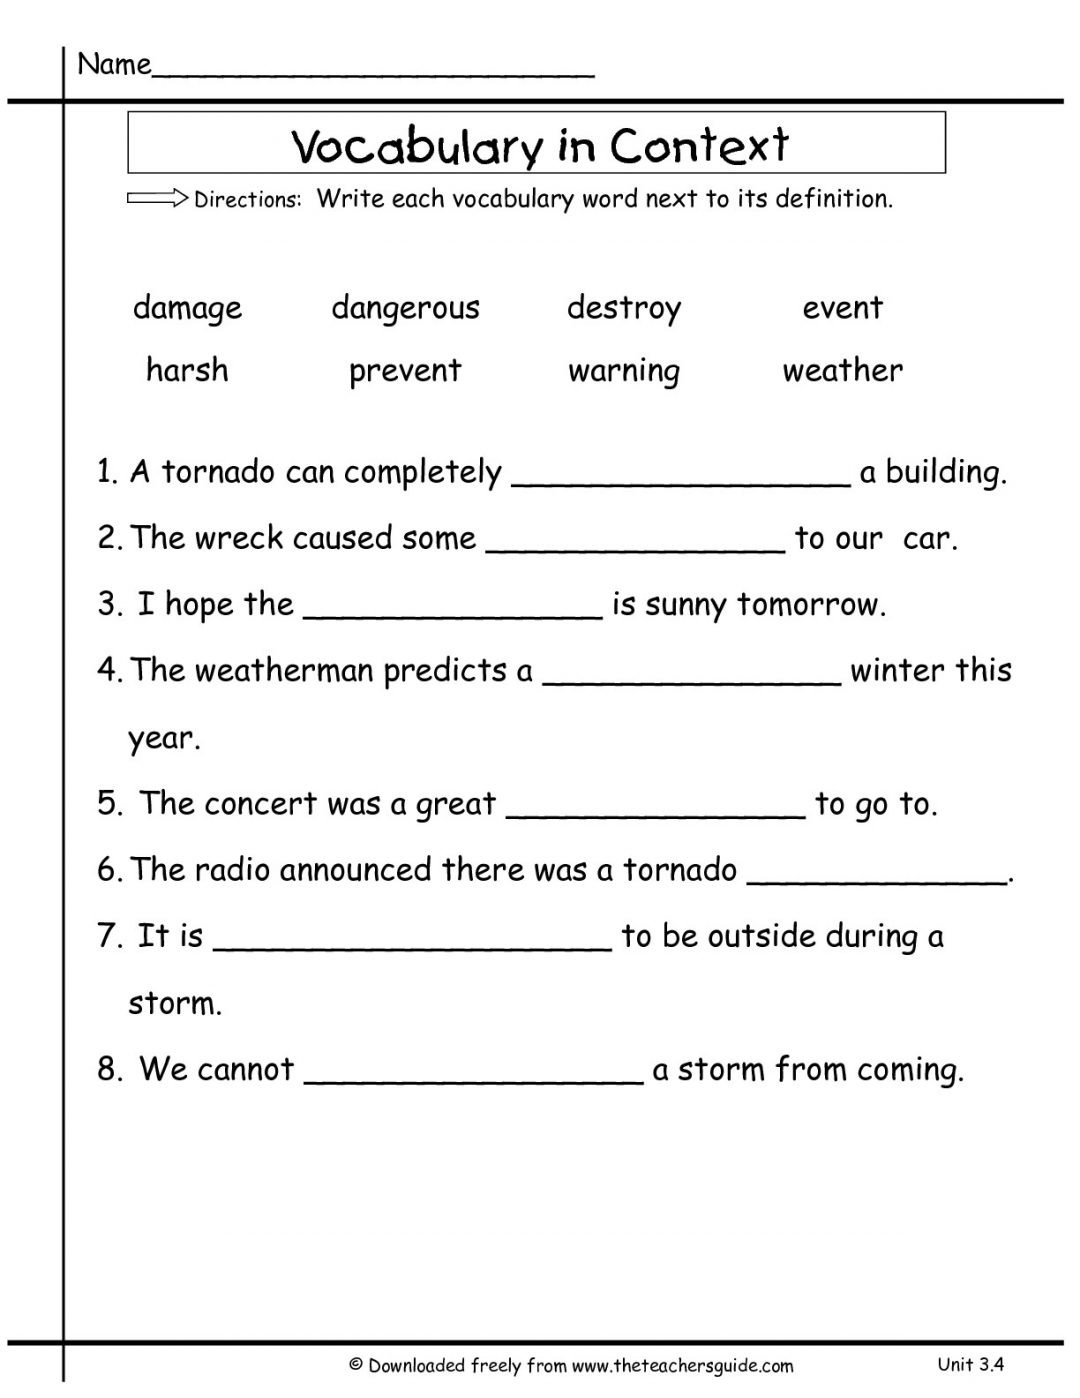 8th Grade Vocabulary Worksheets Pdf top Ten Floo Y Wong Artist — Vocabulary Words for 8th